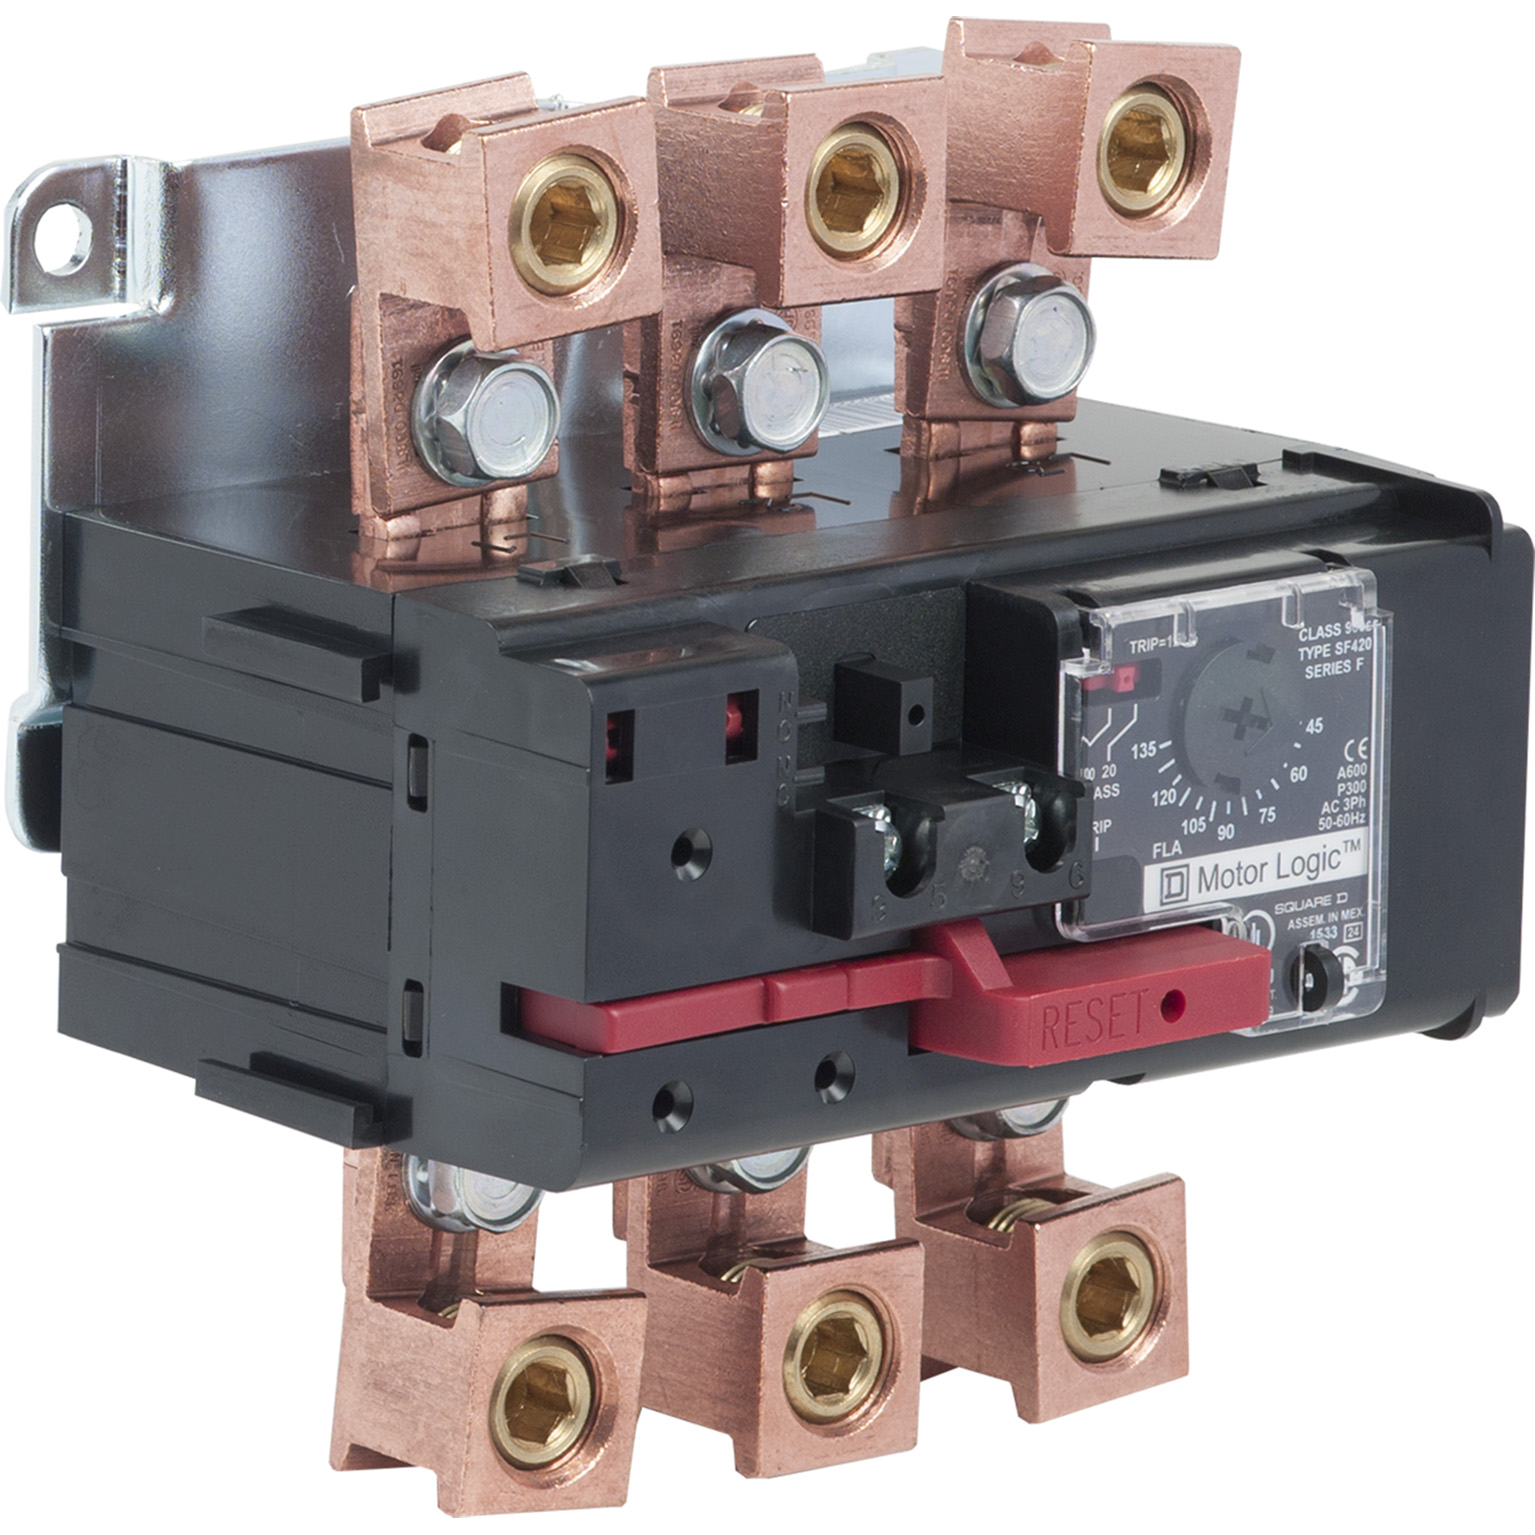 SQUARE D Motor Logic solid state overload relay, separate mount, Size 4, 45 to 135 A, 600 VAC